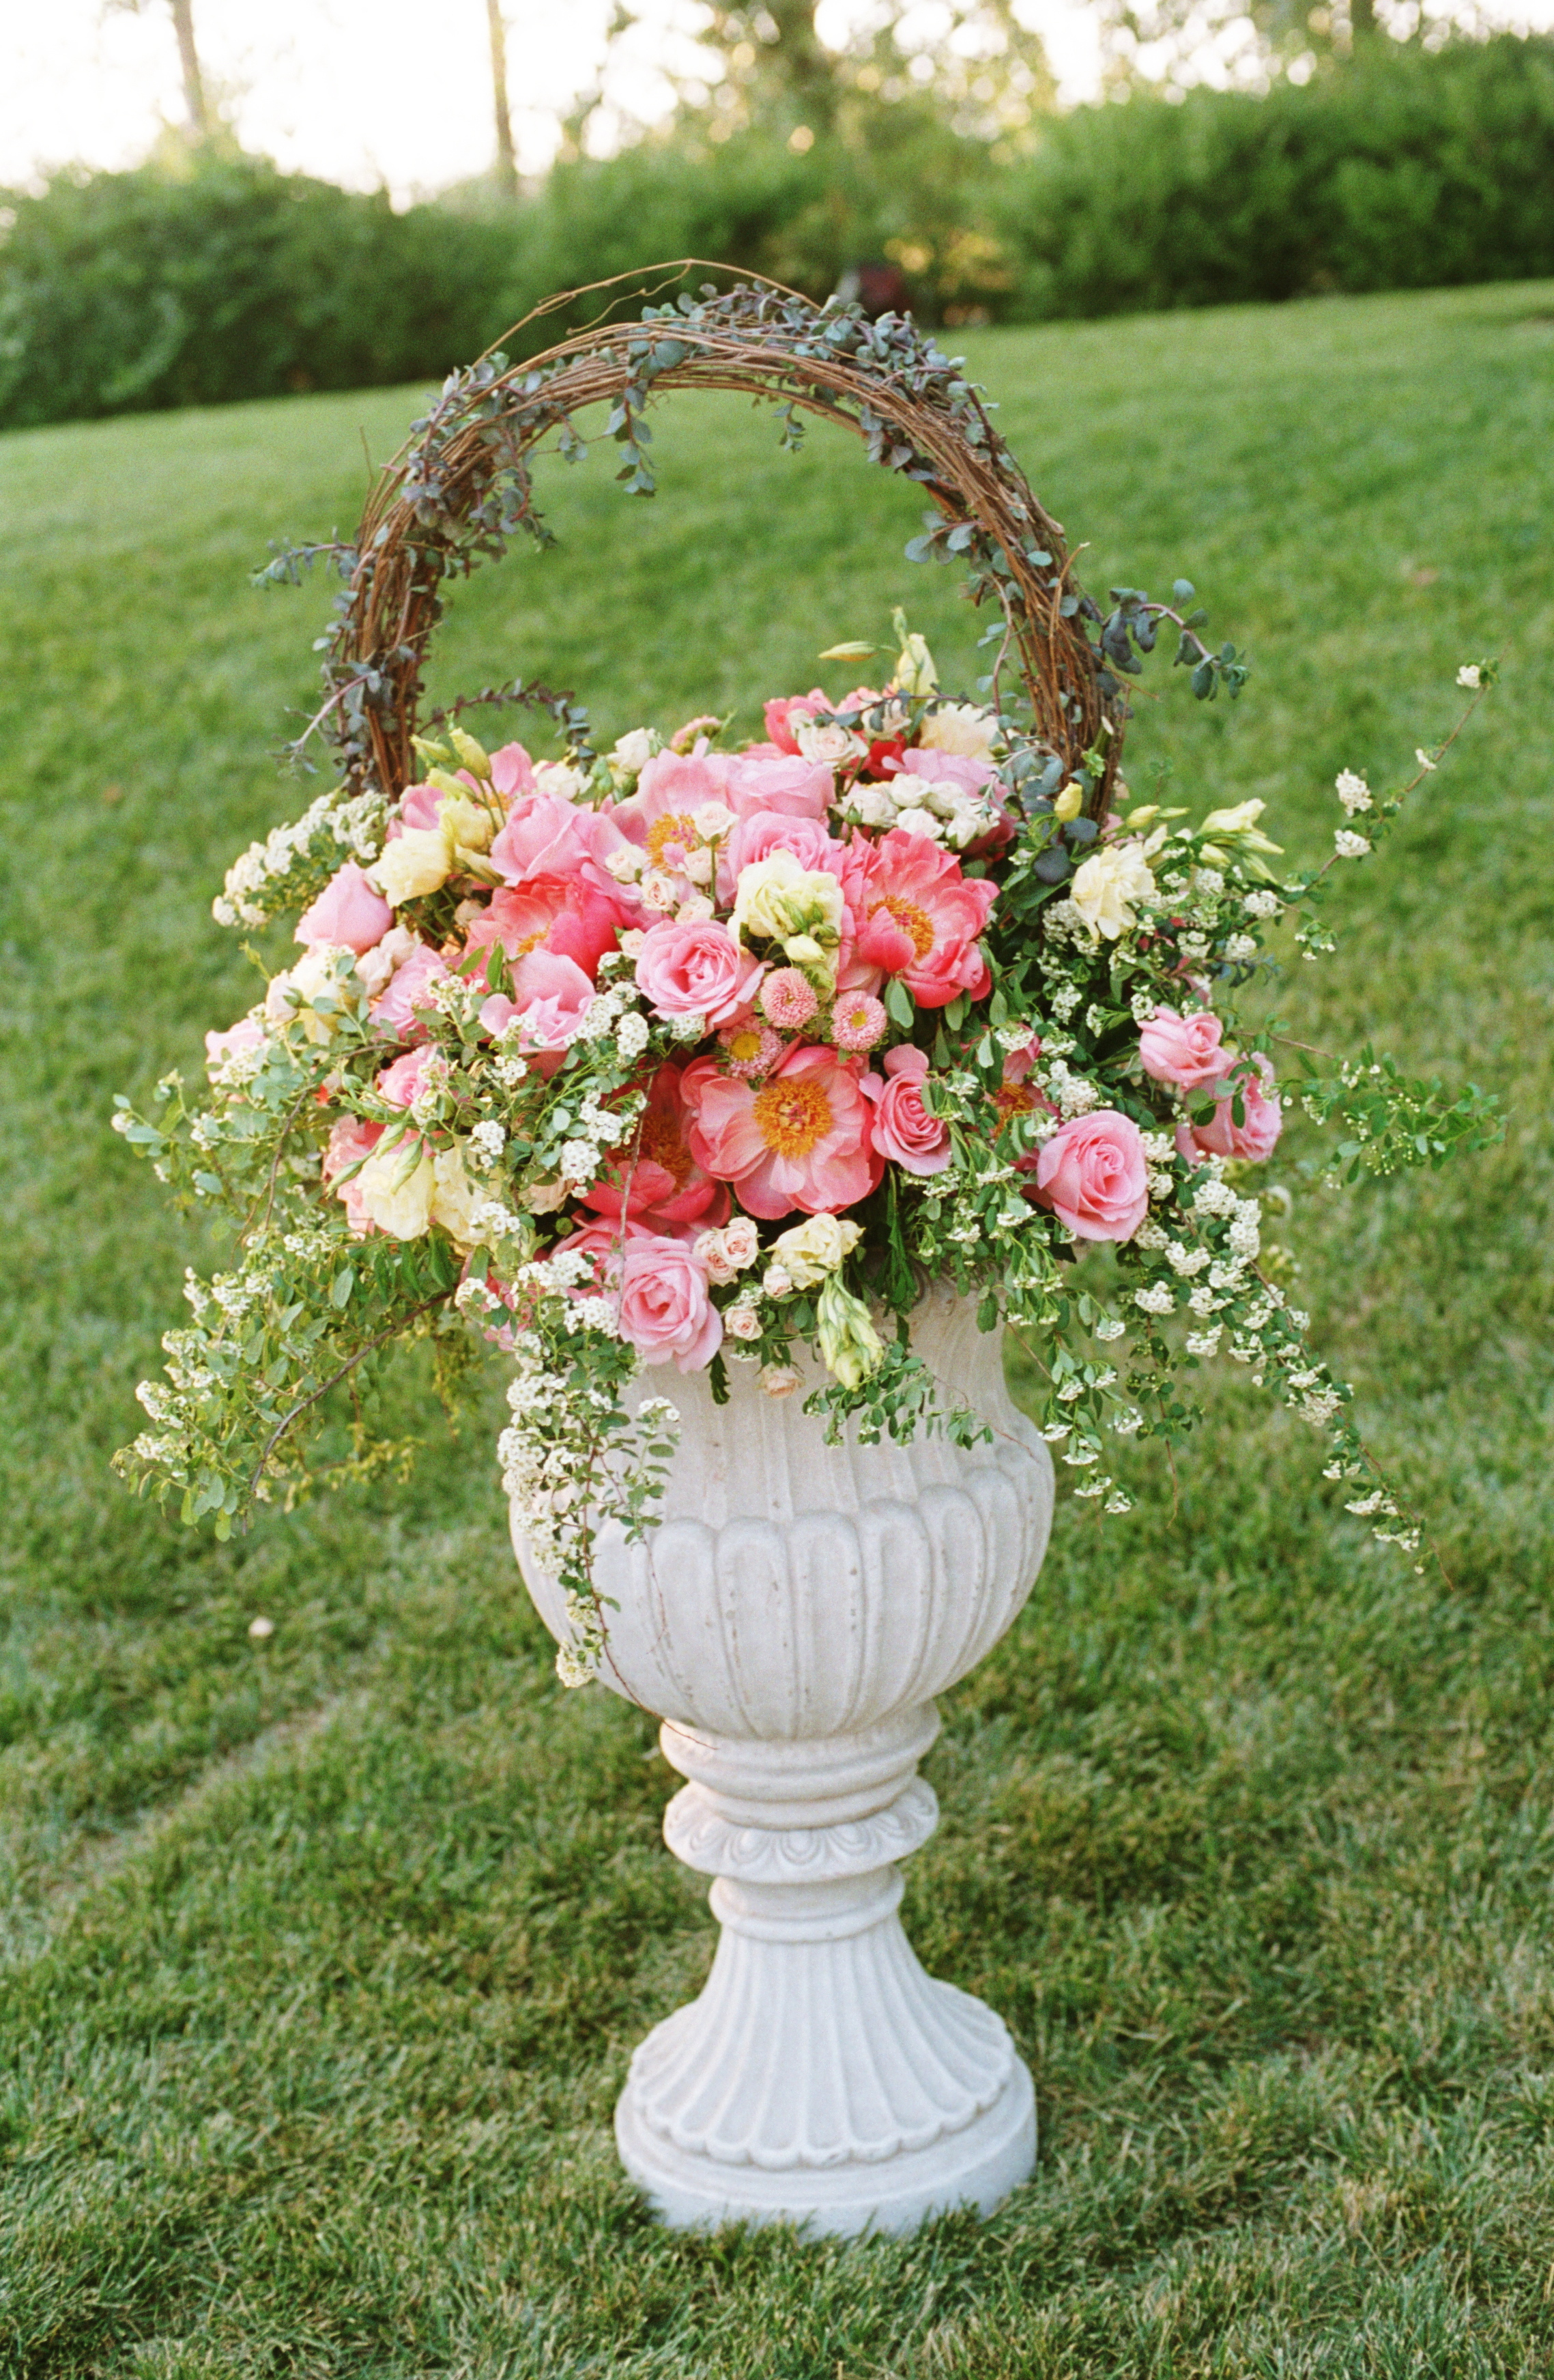 Ceremony Flowers, Rustic Wedding Flowers & Decor